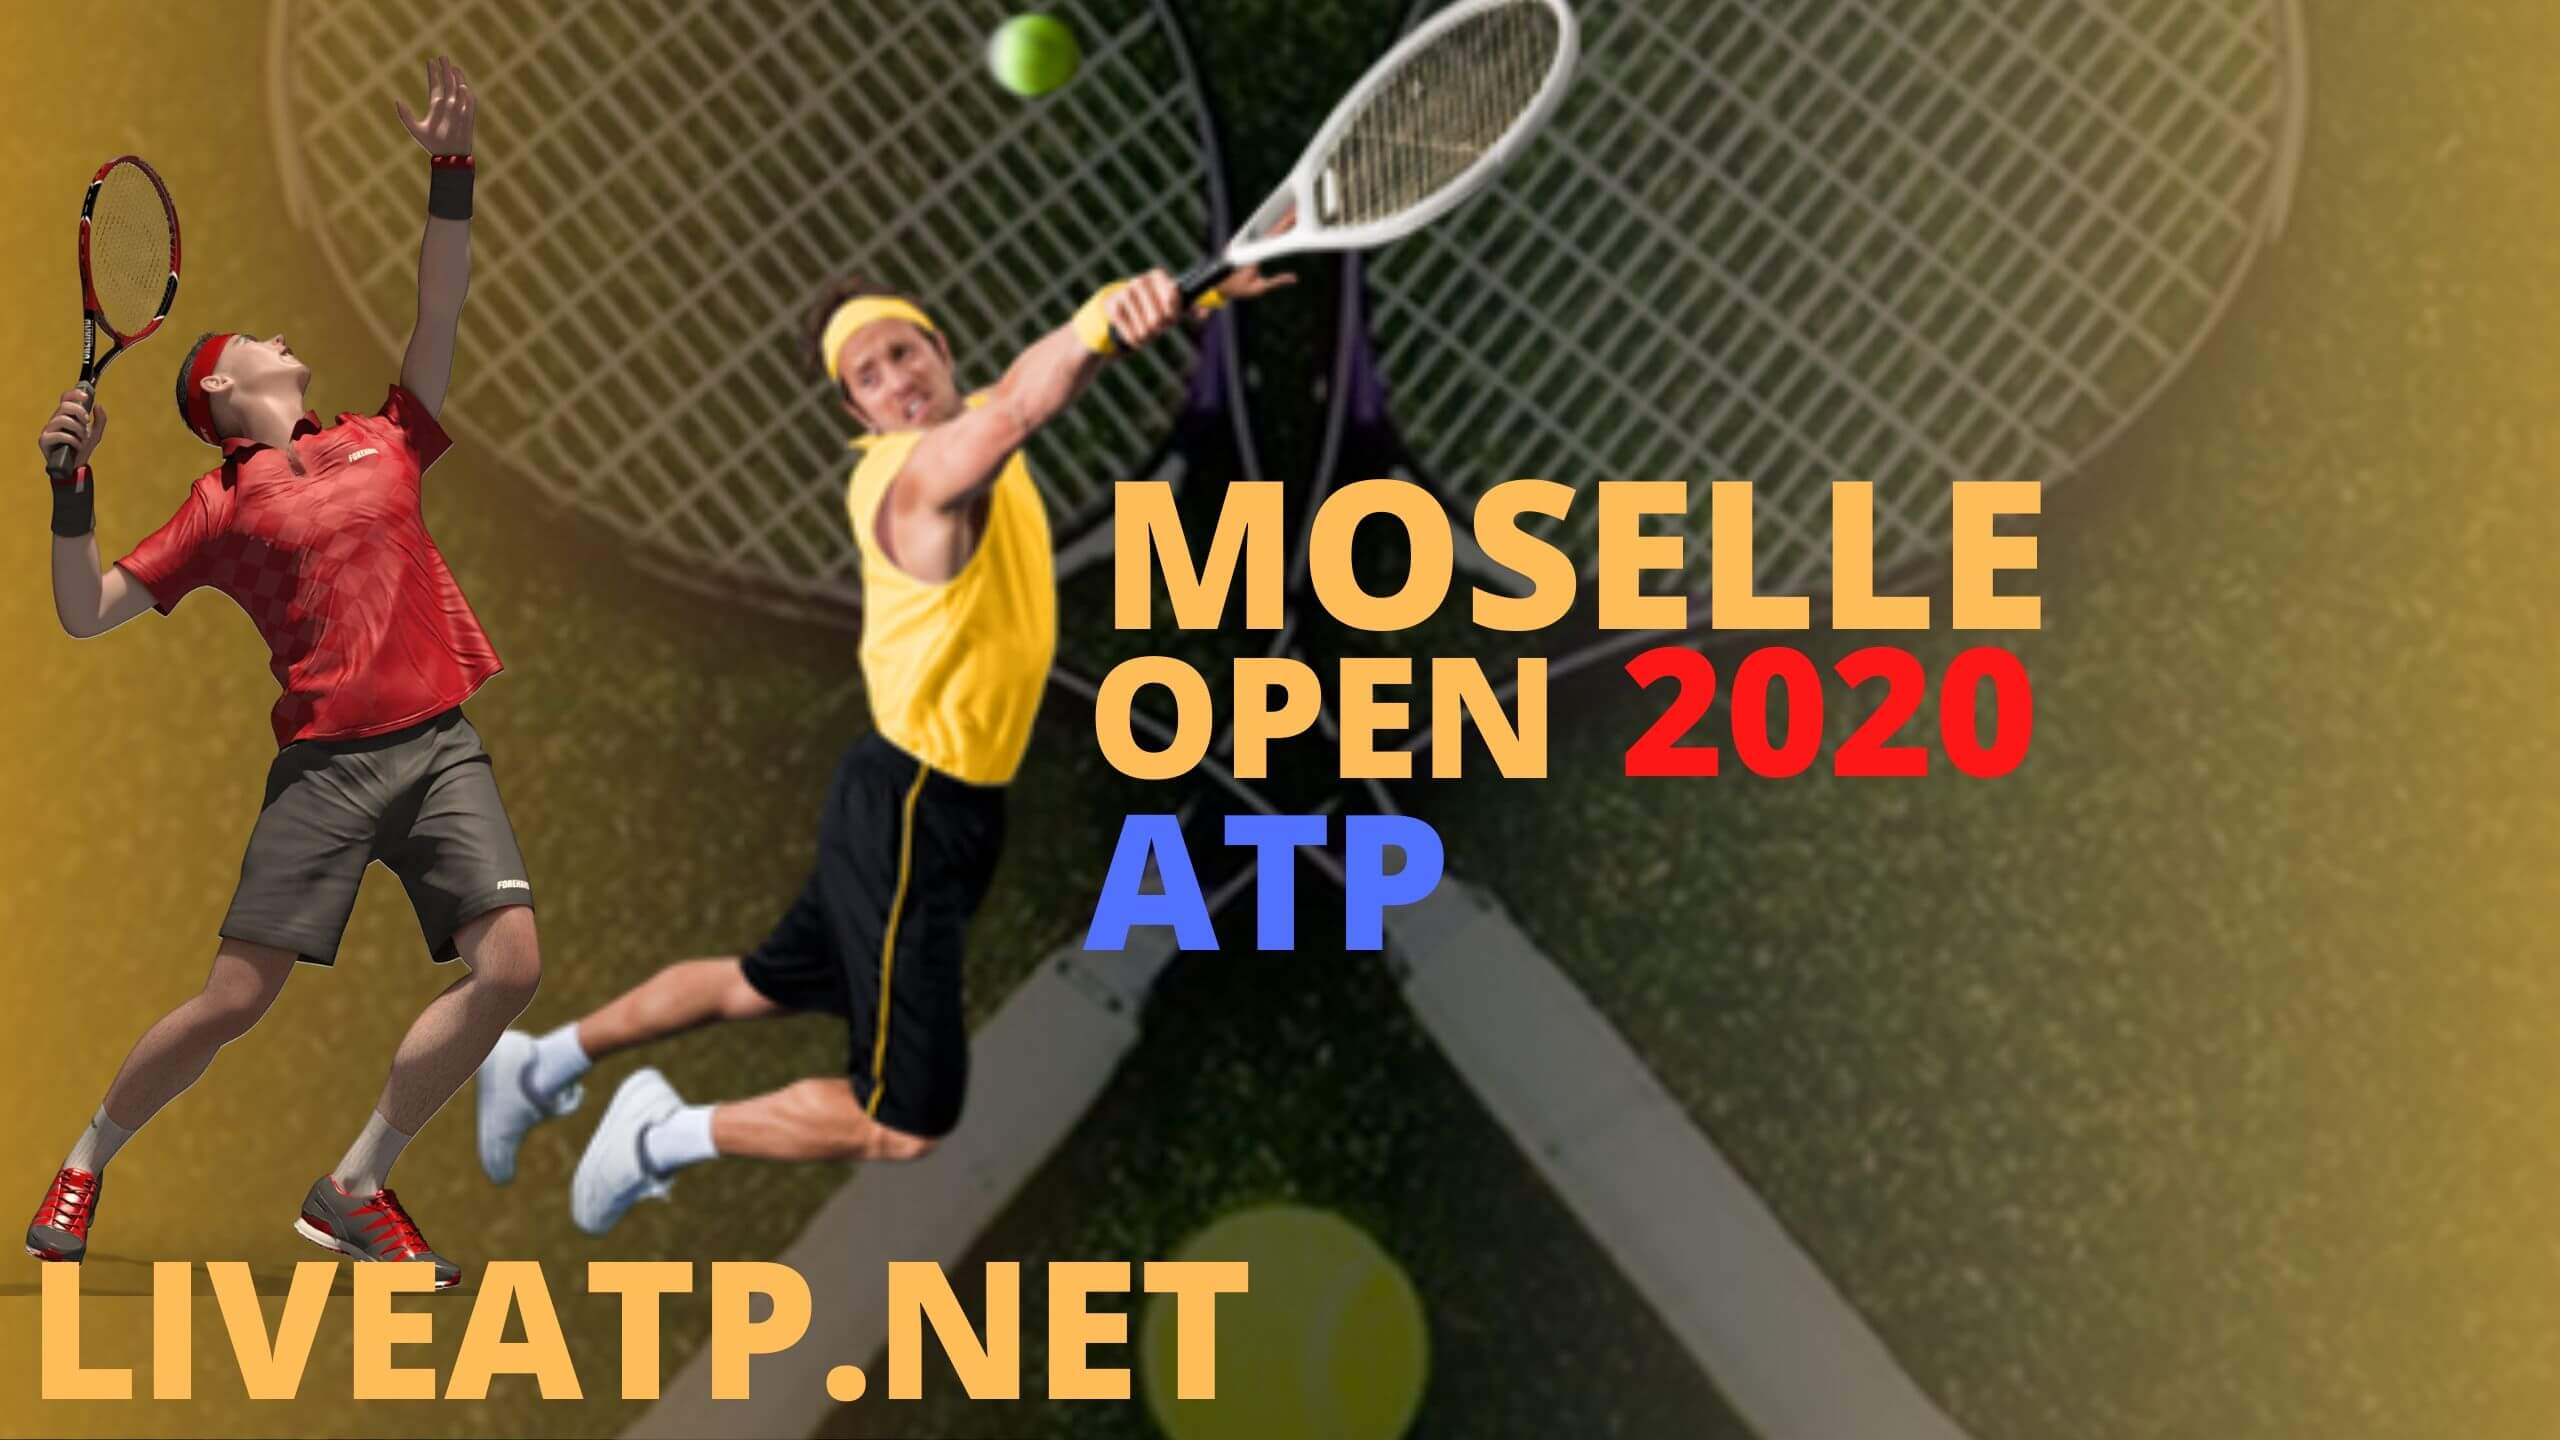 Moselle Open Live Stream 2020 | Day 2